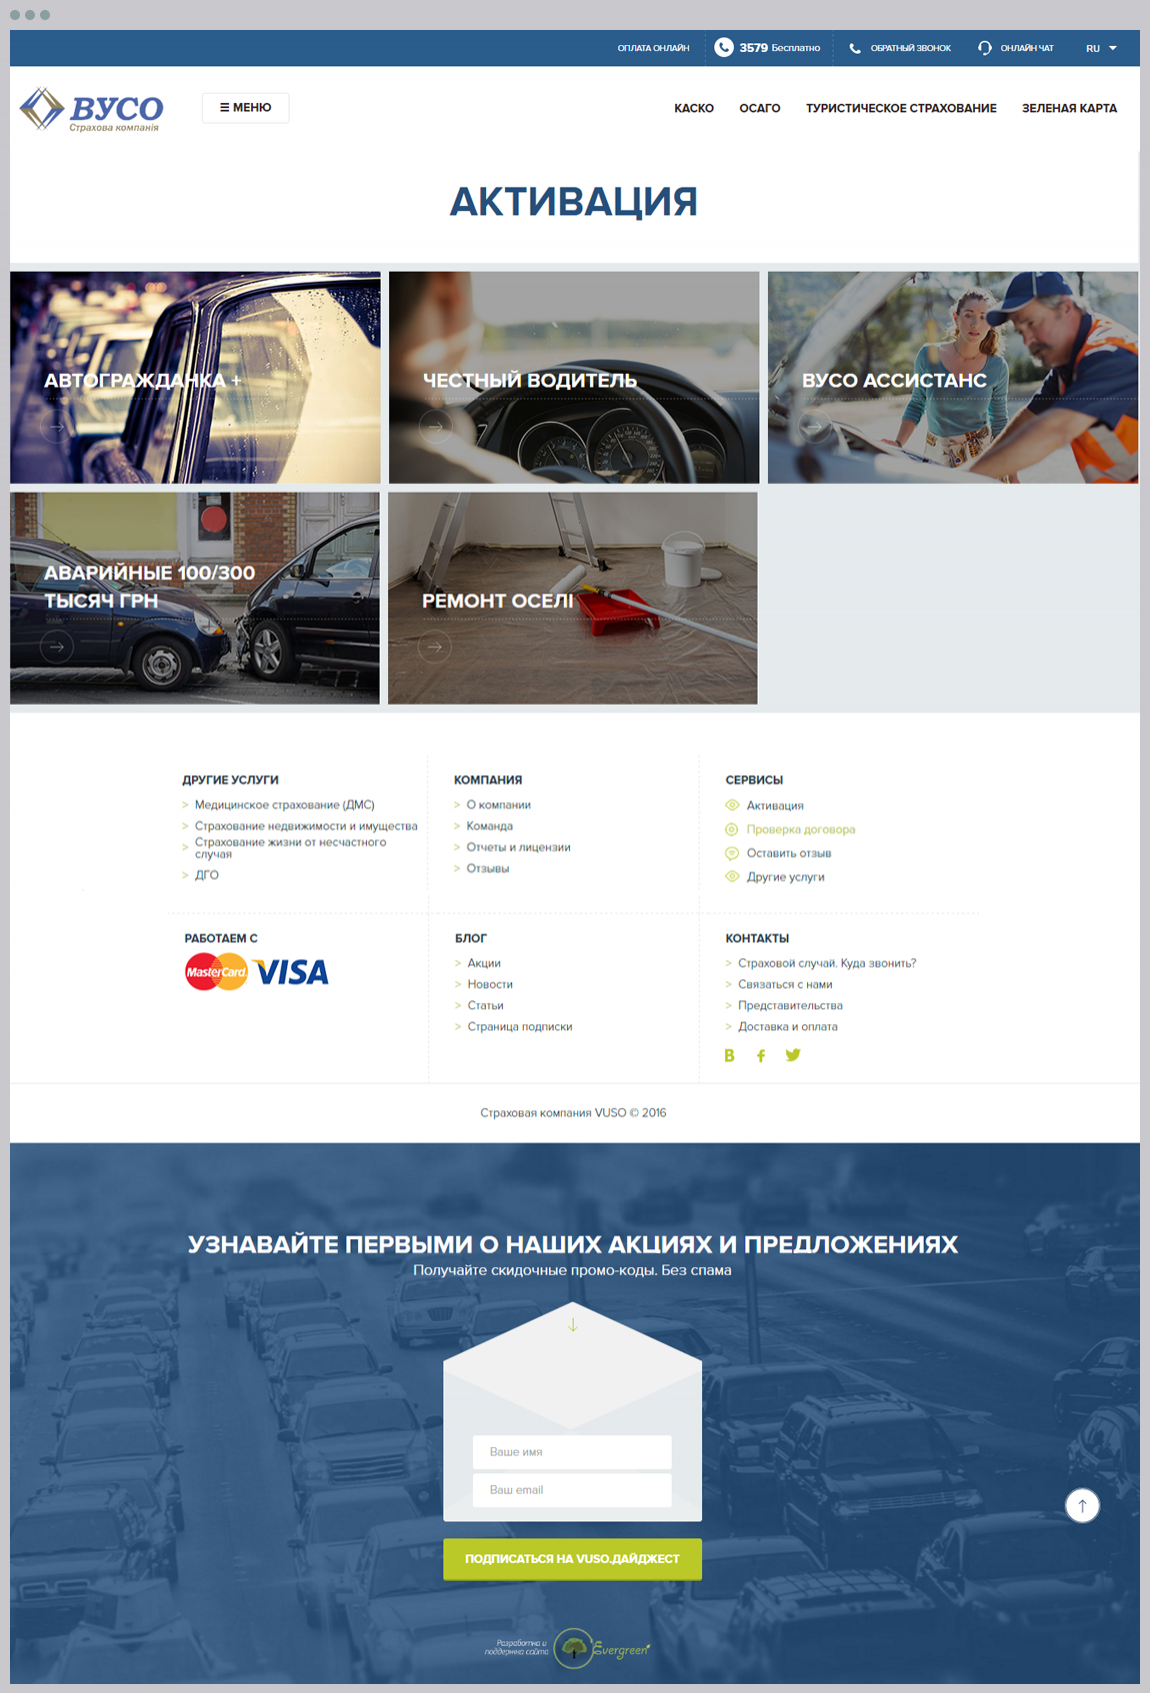 The updated online portal of the insurance company VUSO | Evergreen projects 6